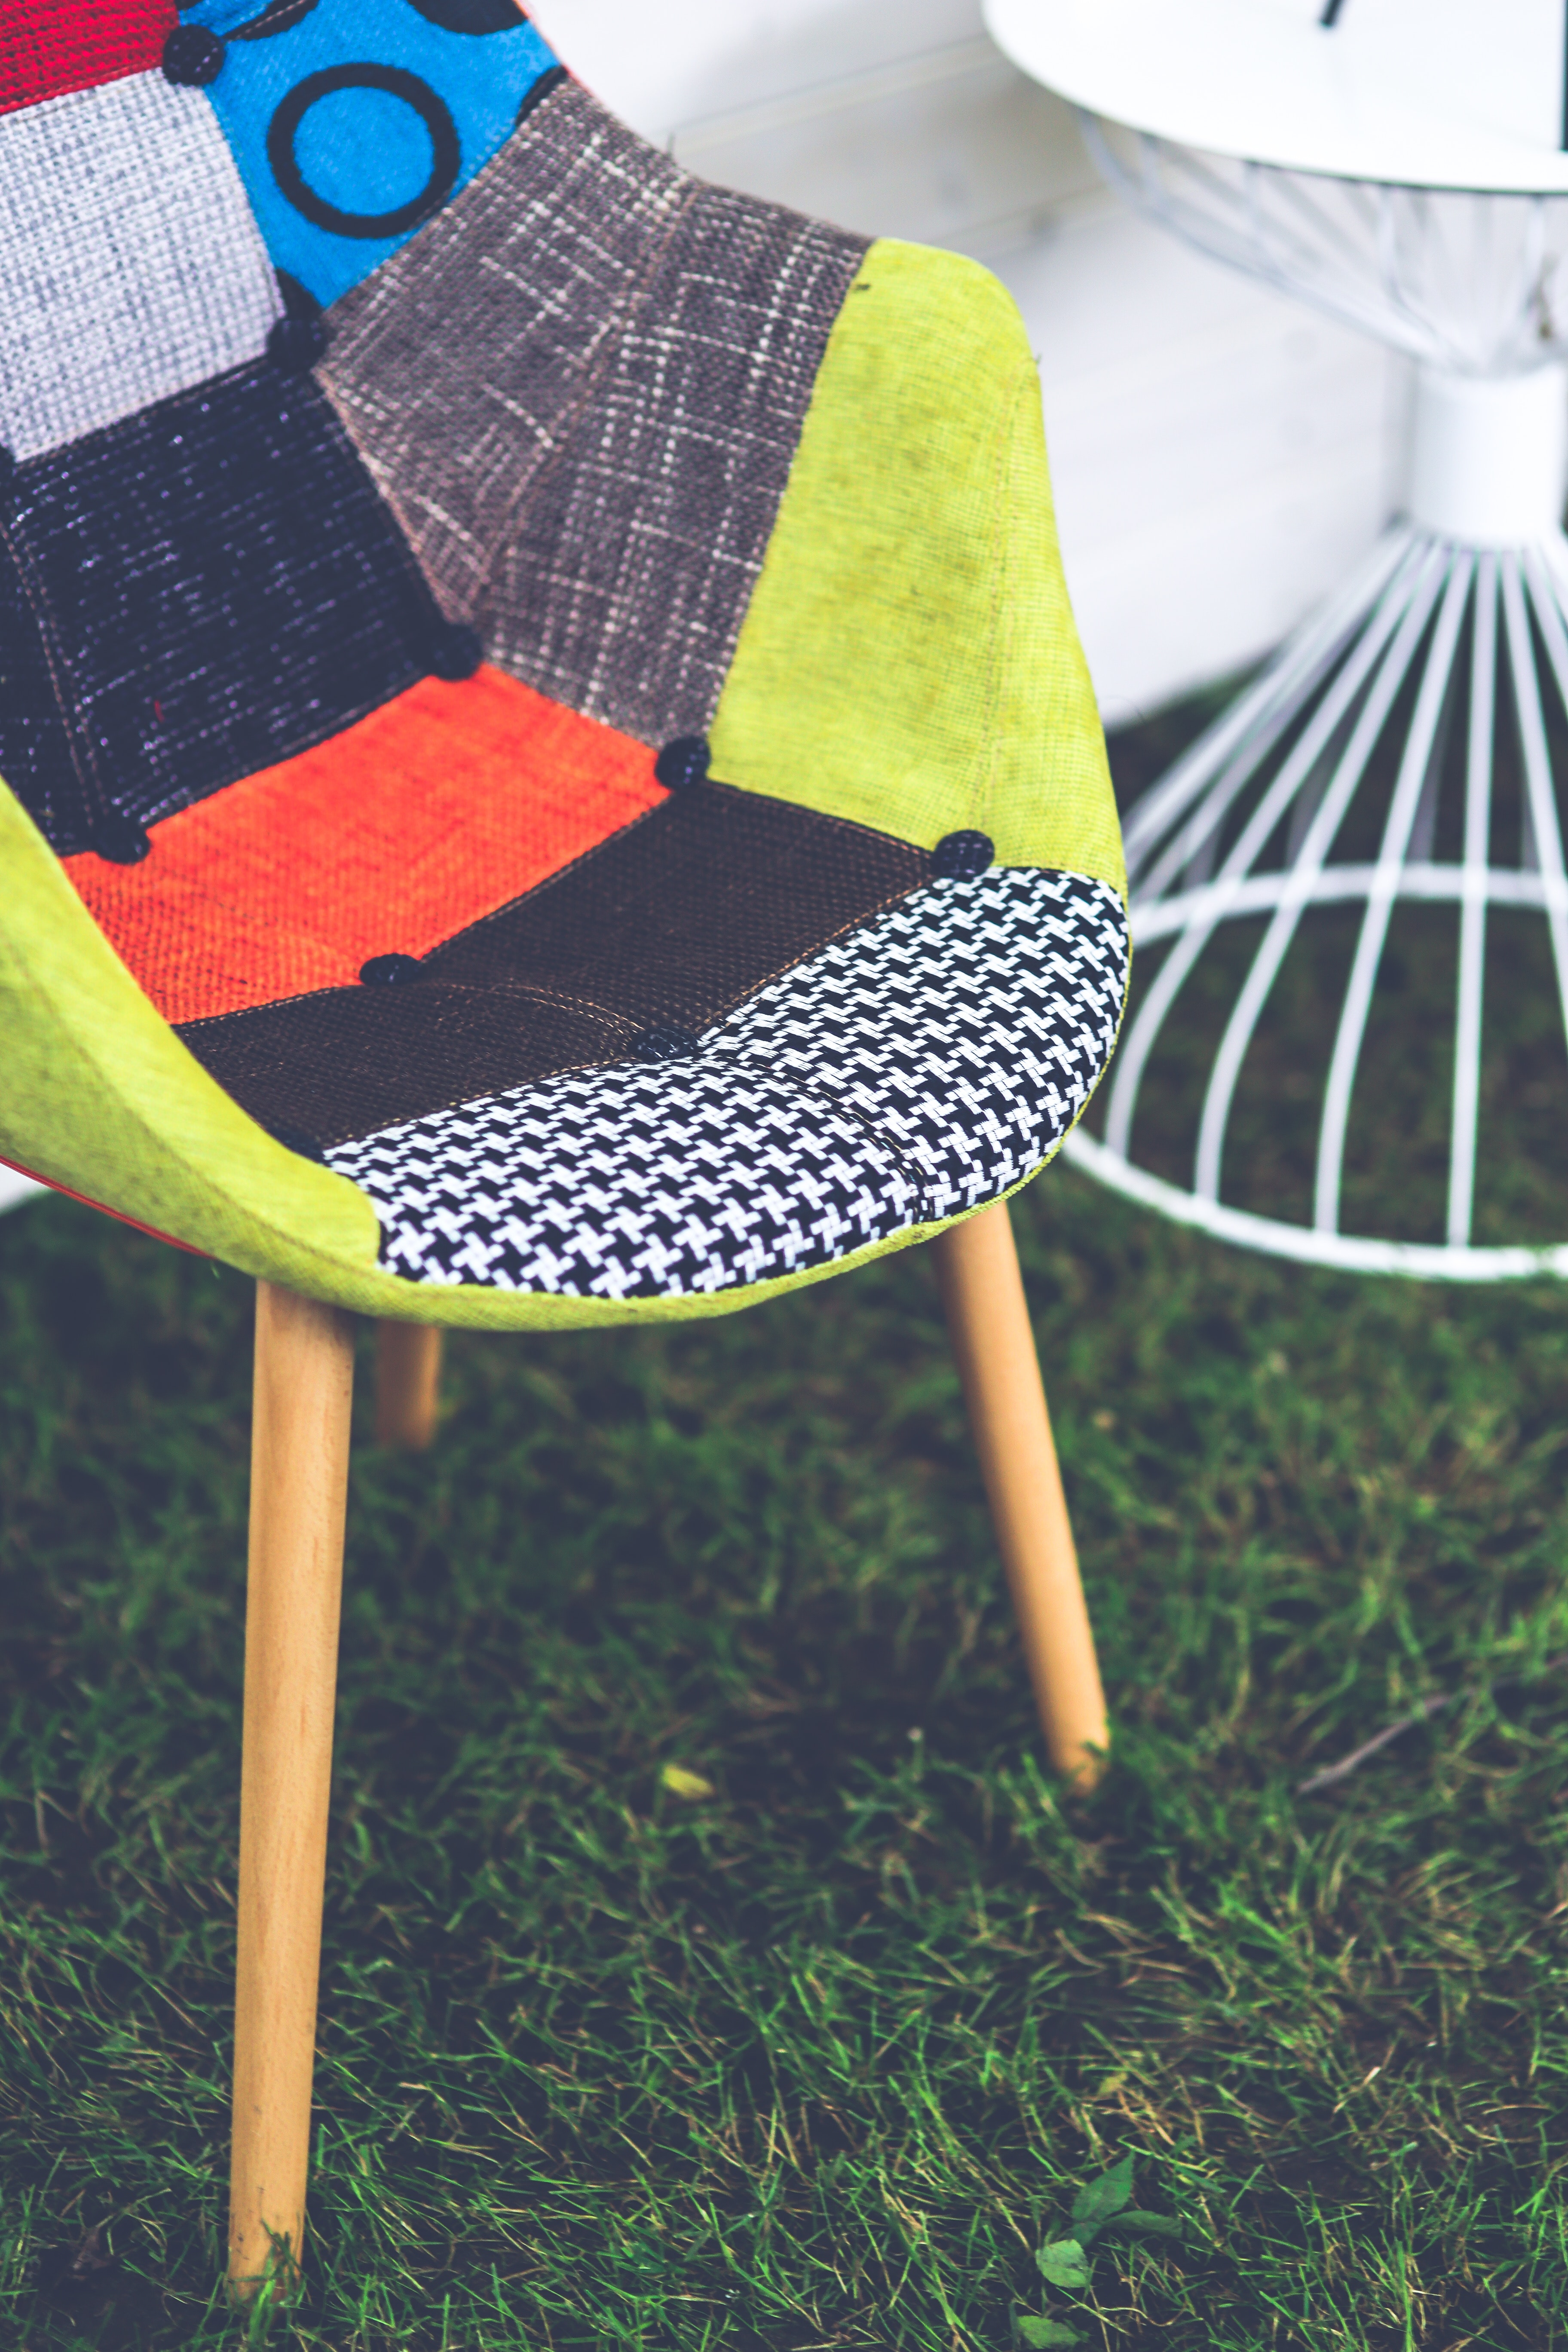 Chair, Bright, Outdoors, Wood, Texture, HQ Photo